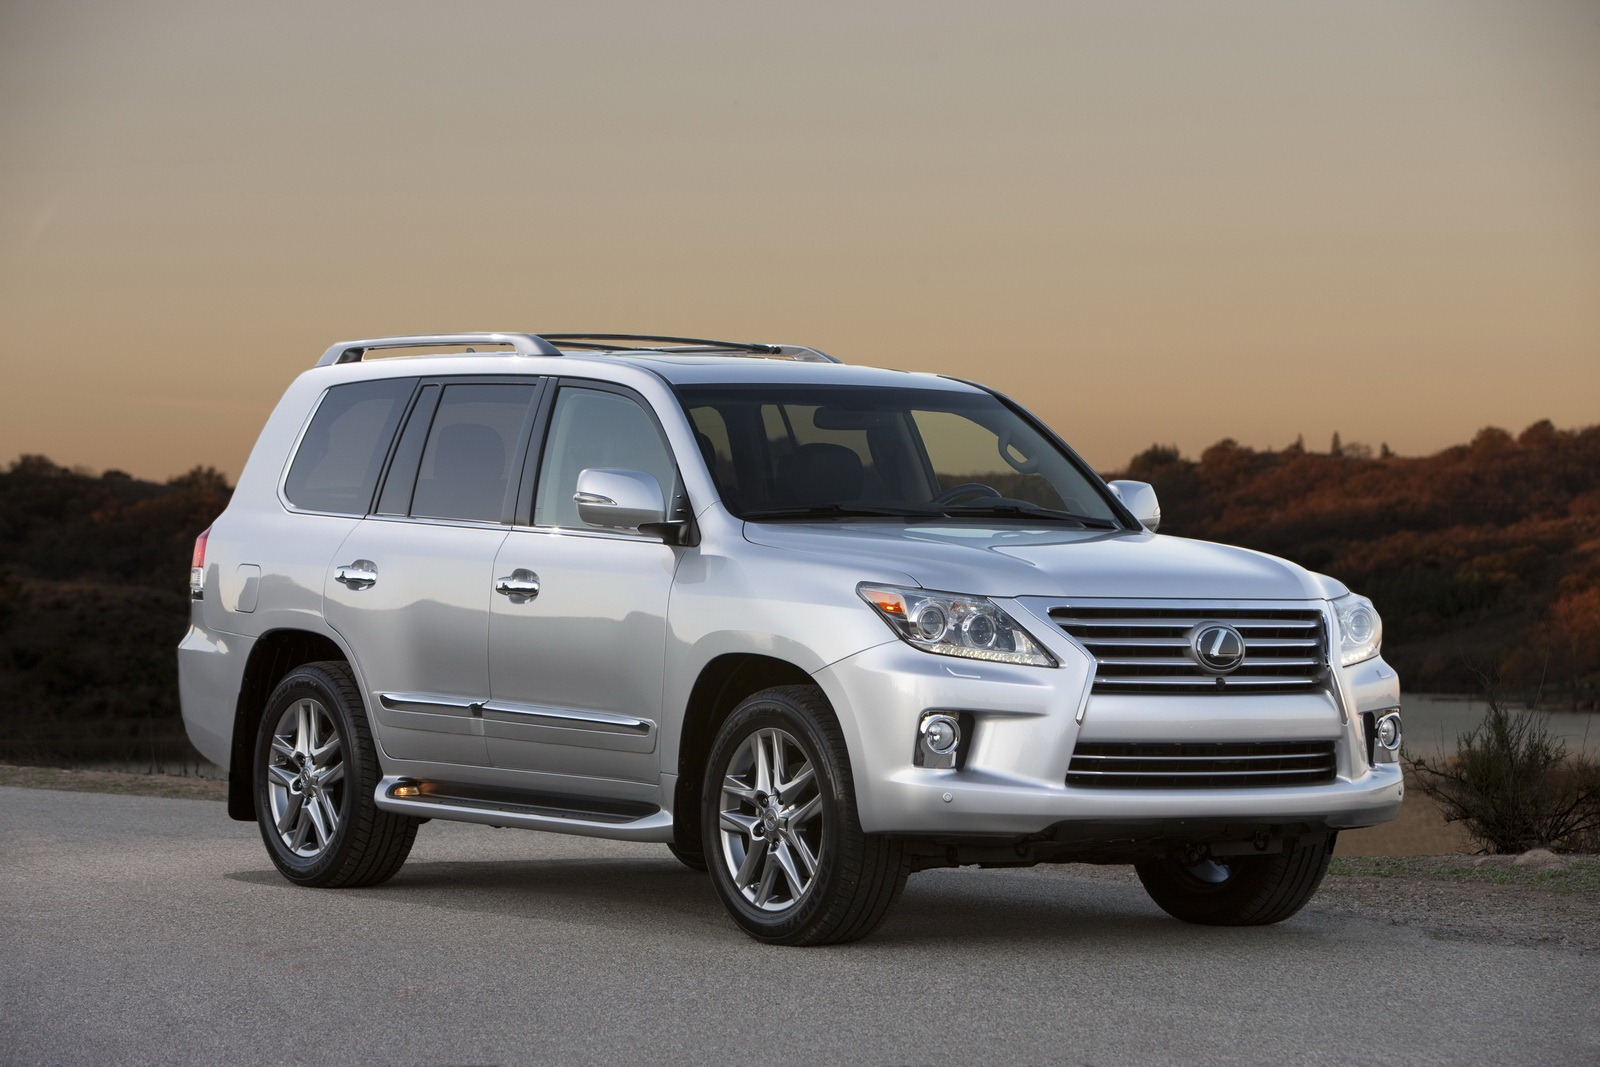 2013 Lexus Lx 570 Luxury Suv An Overview Machinespider Com